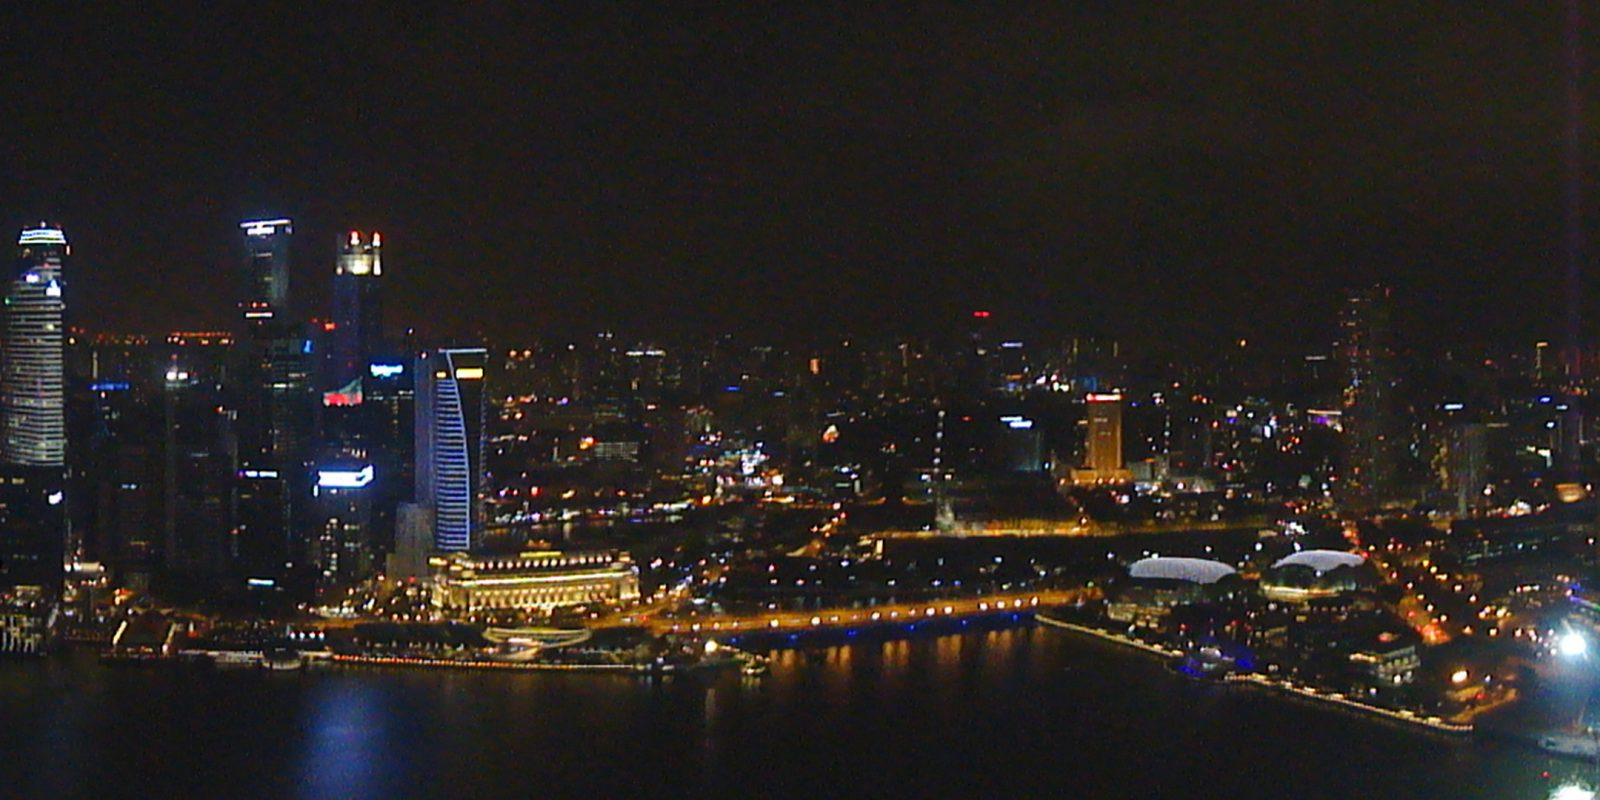 Spectrum TV Singapore Skyline Night Photo